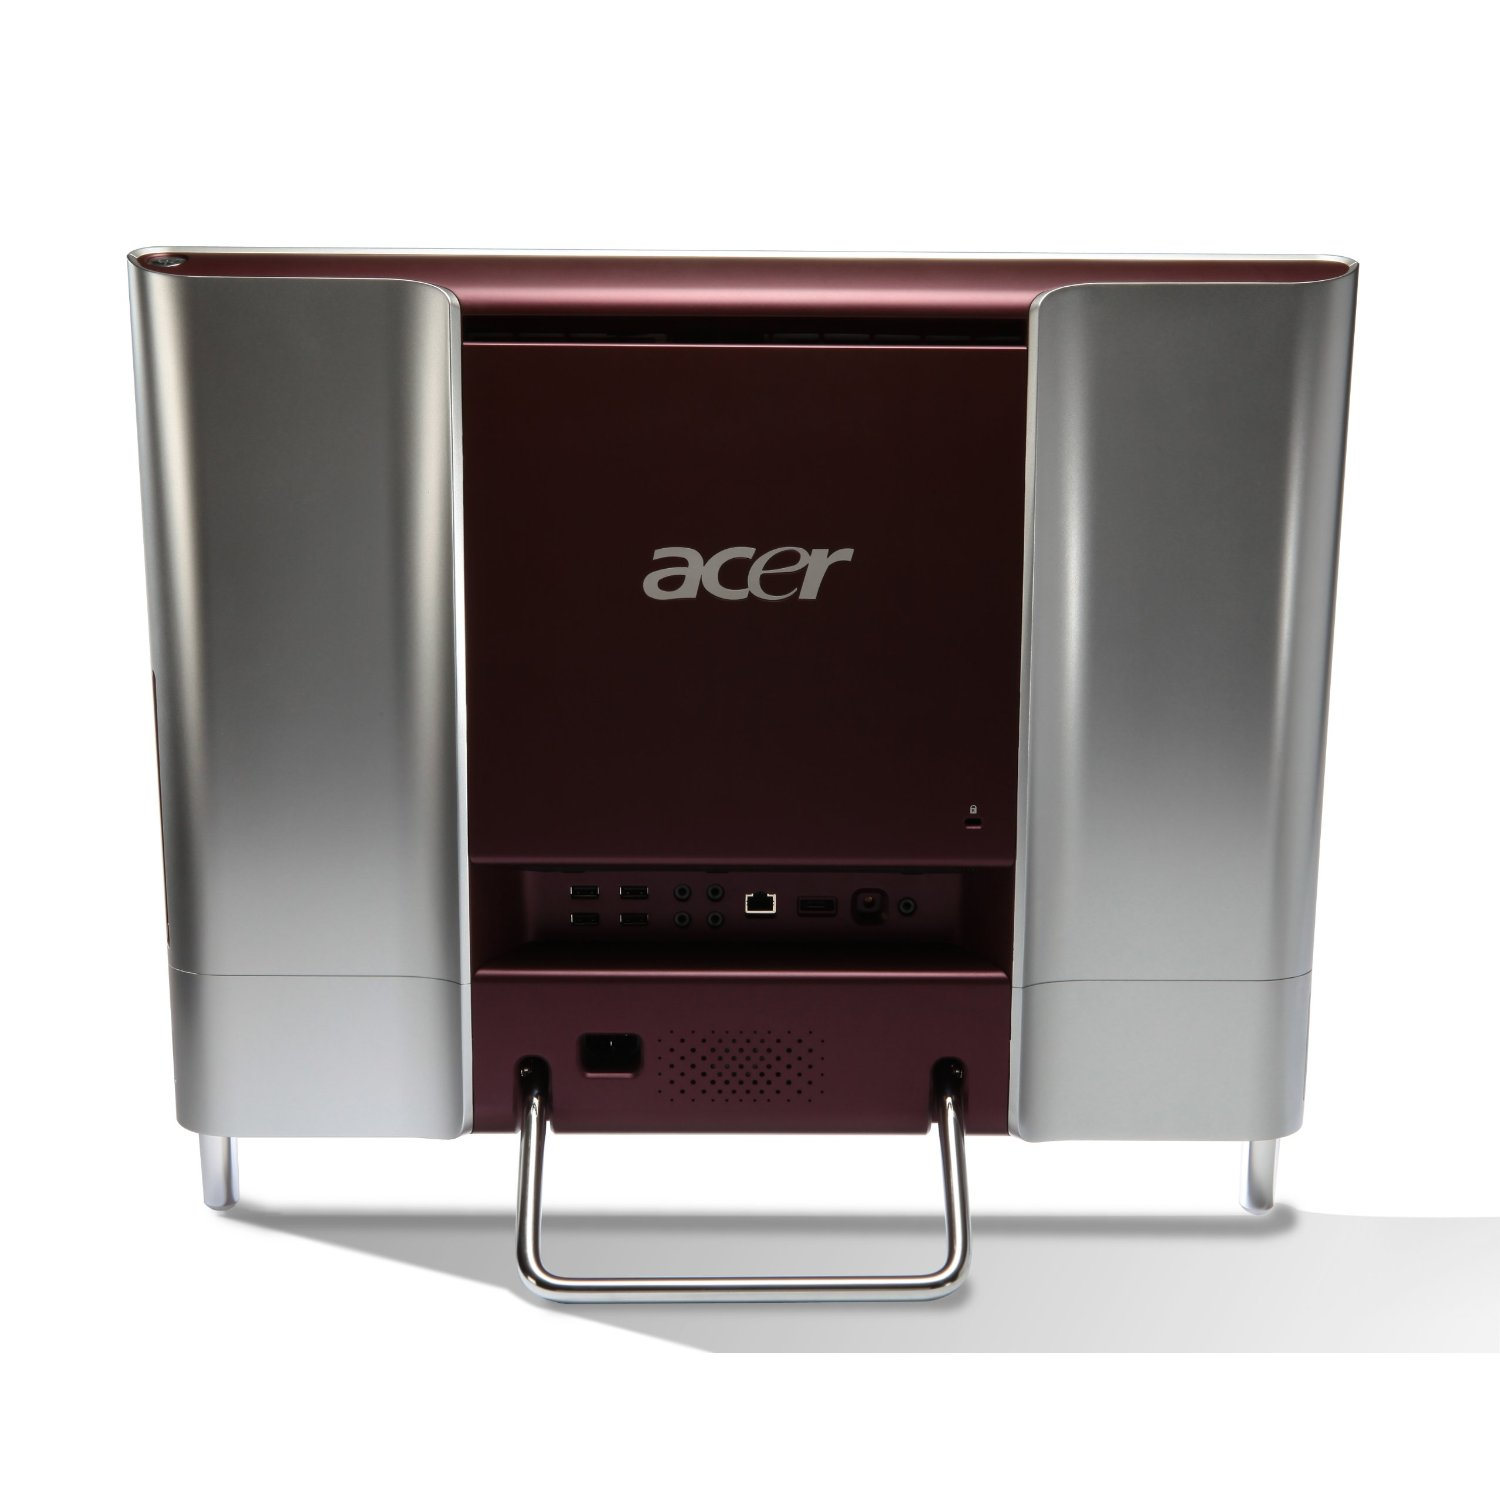 acer az5700 all in one desktop pc available for tech prezz. Black Bedroom Furniture Sets. Home Design Ideas